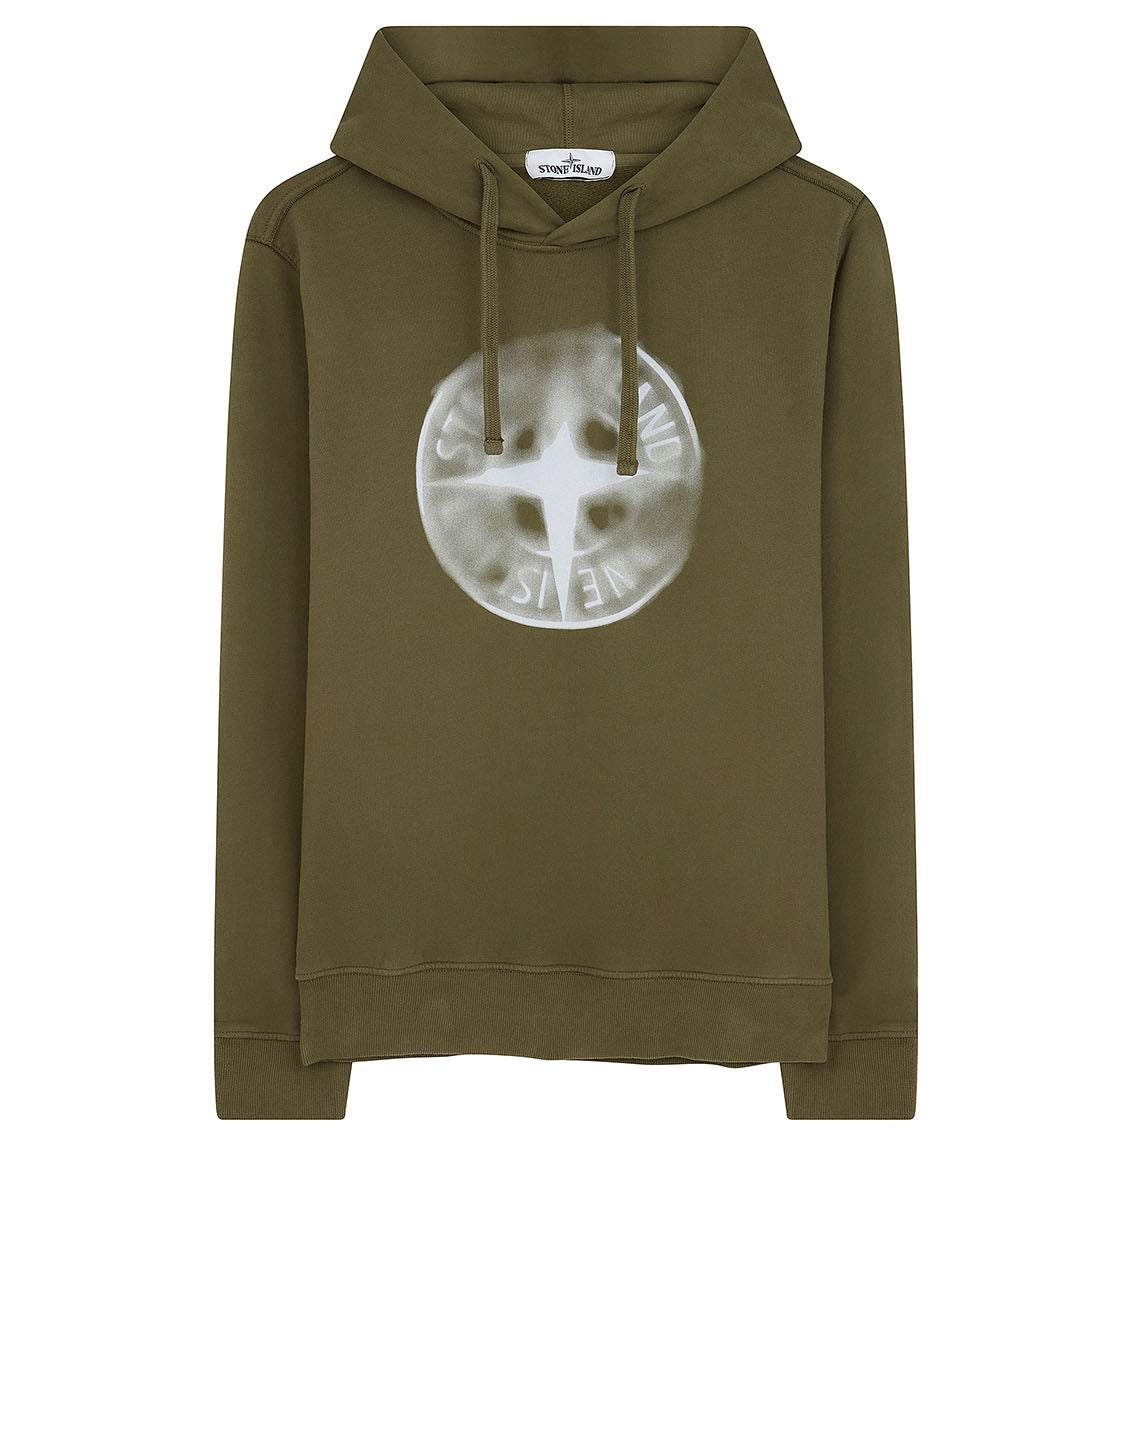 66089 'GRAPHIC TEN' Sweatshirt in Olive